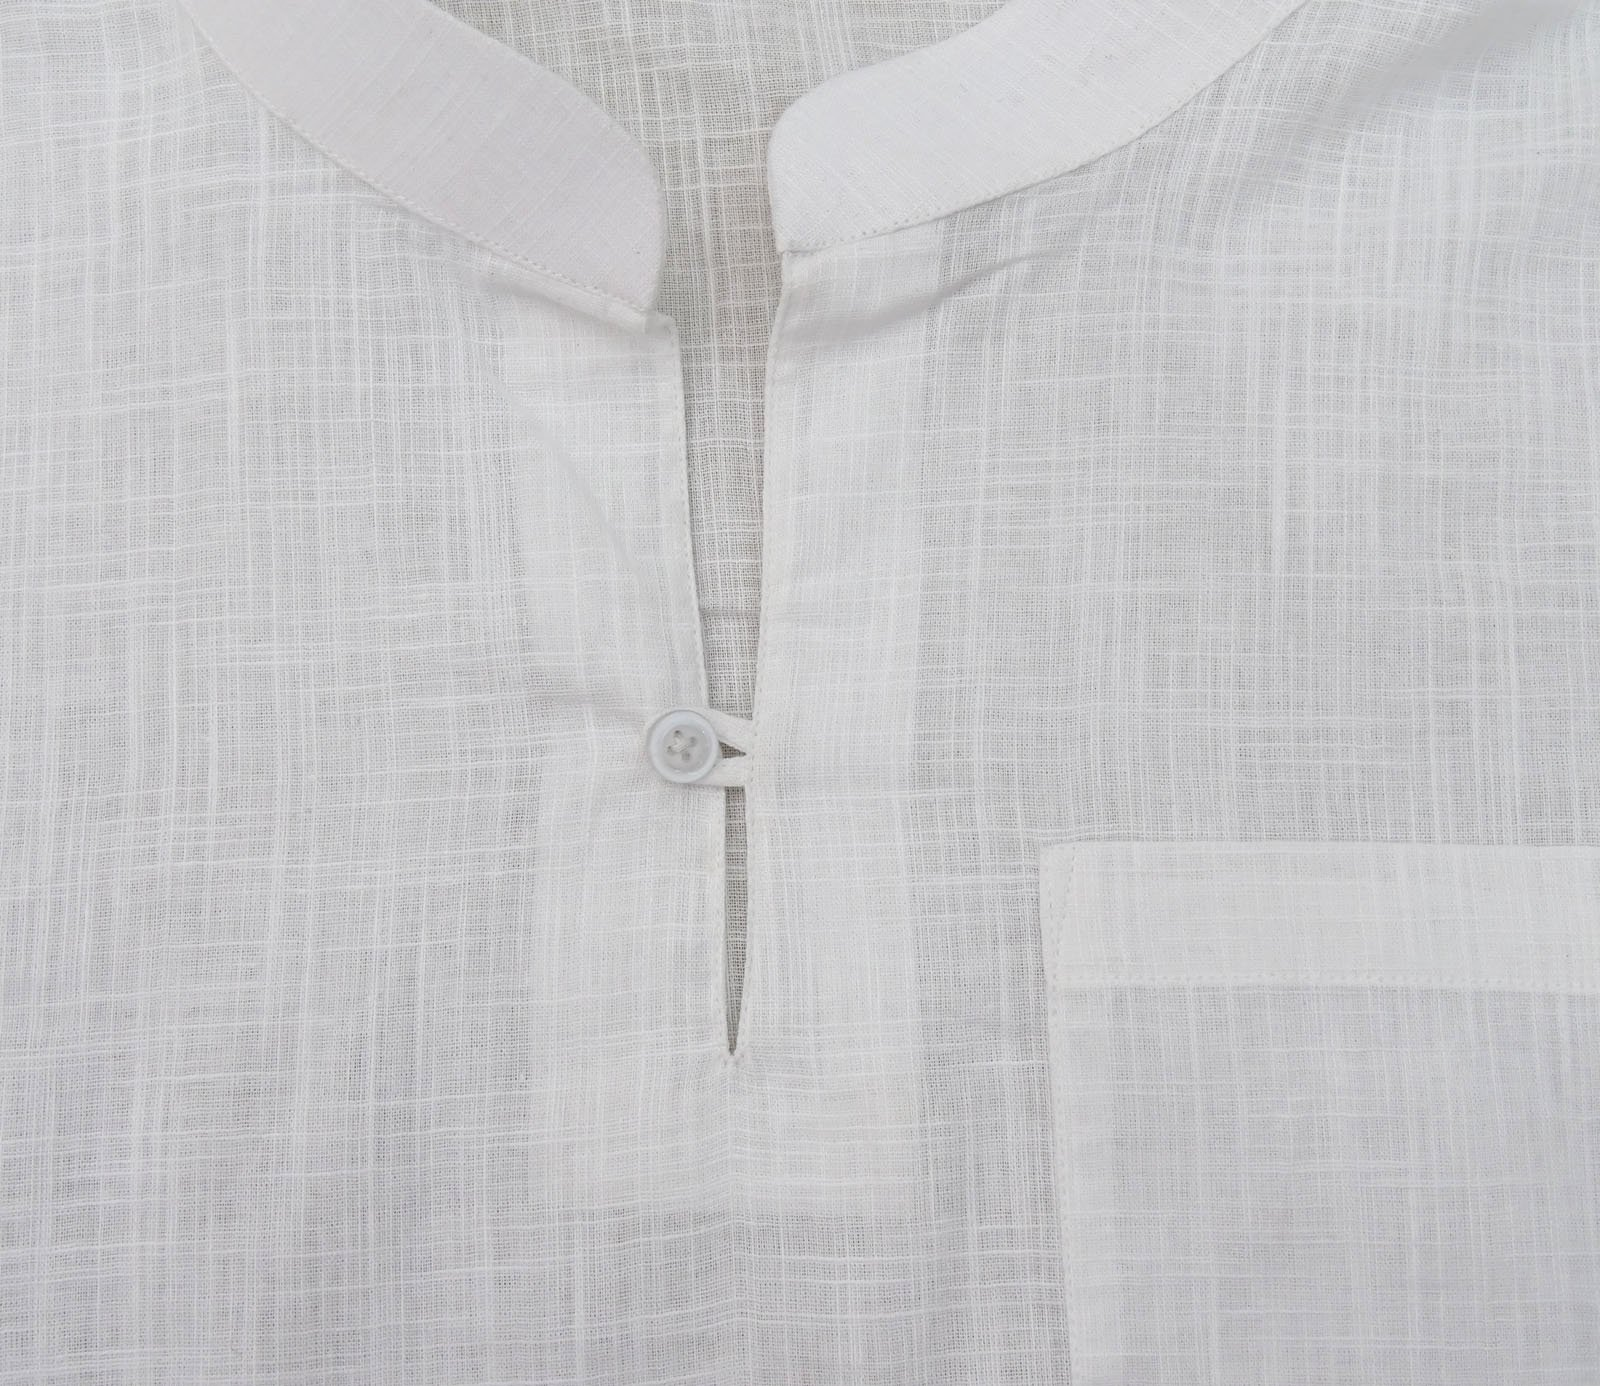 Atasi Men's Band Collar Short Kurta White Cotton Casual Tunic Shirt-Large by Atasi (Image #5)